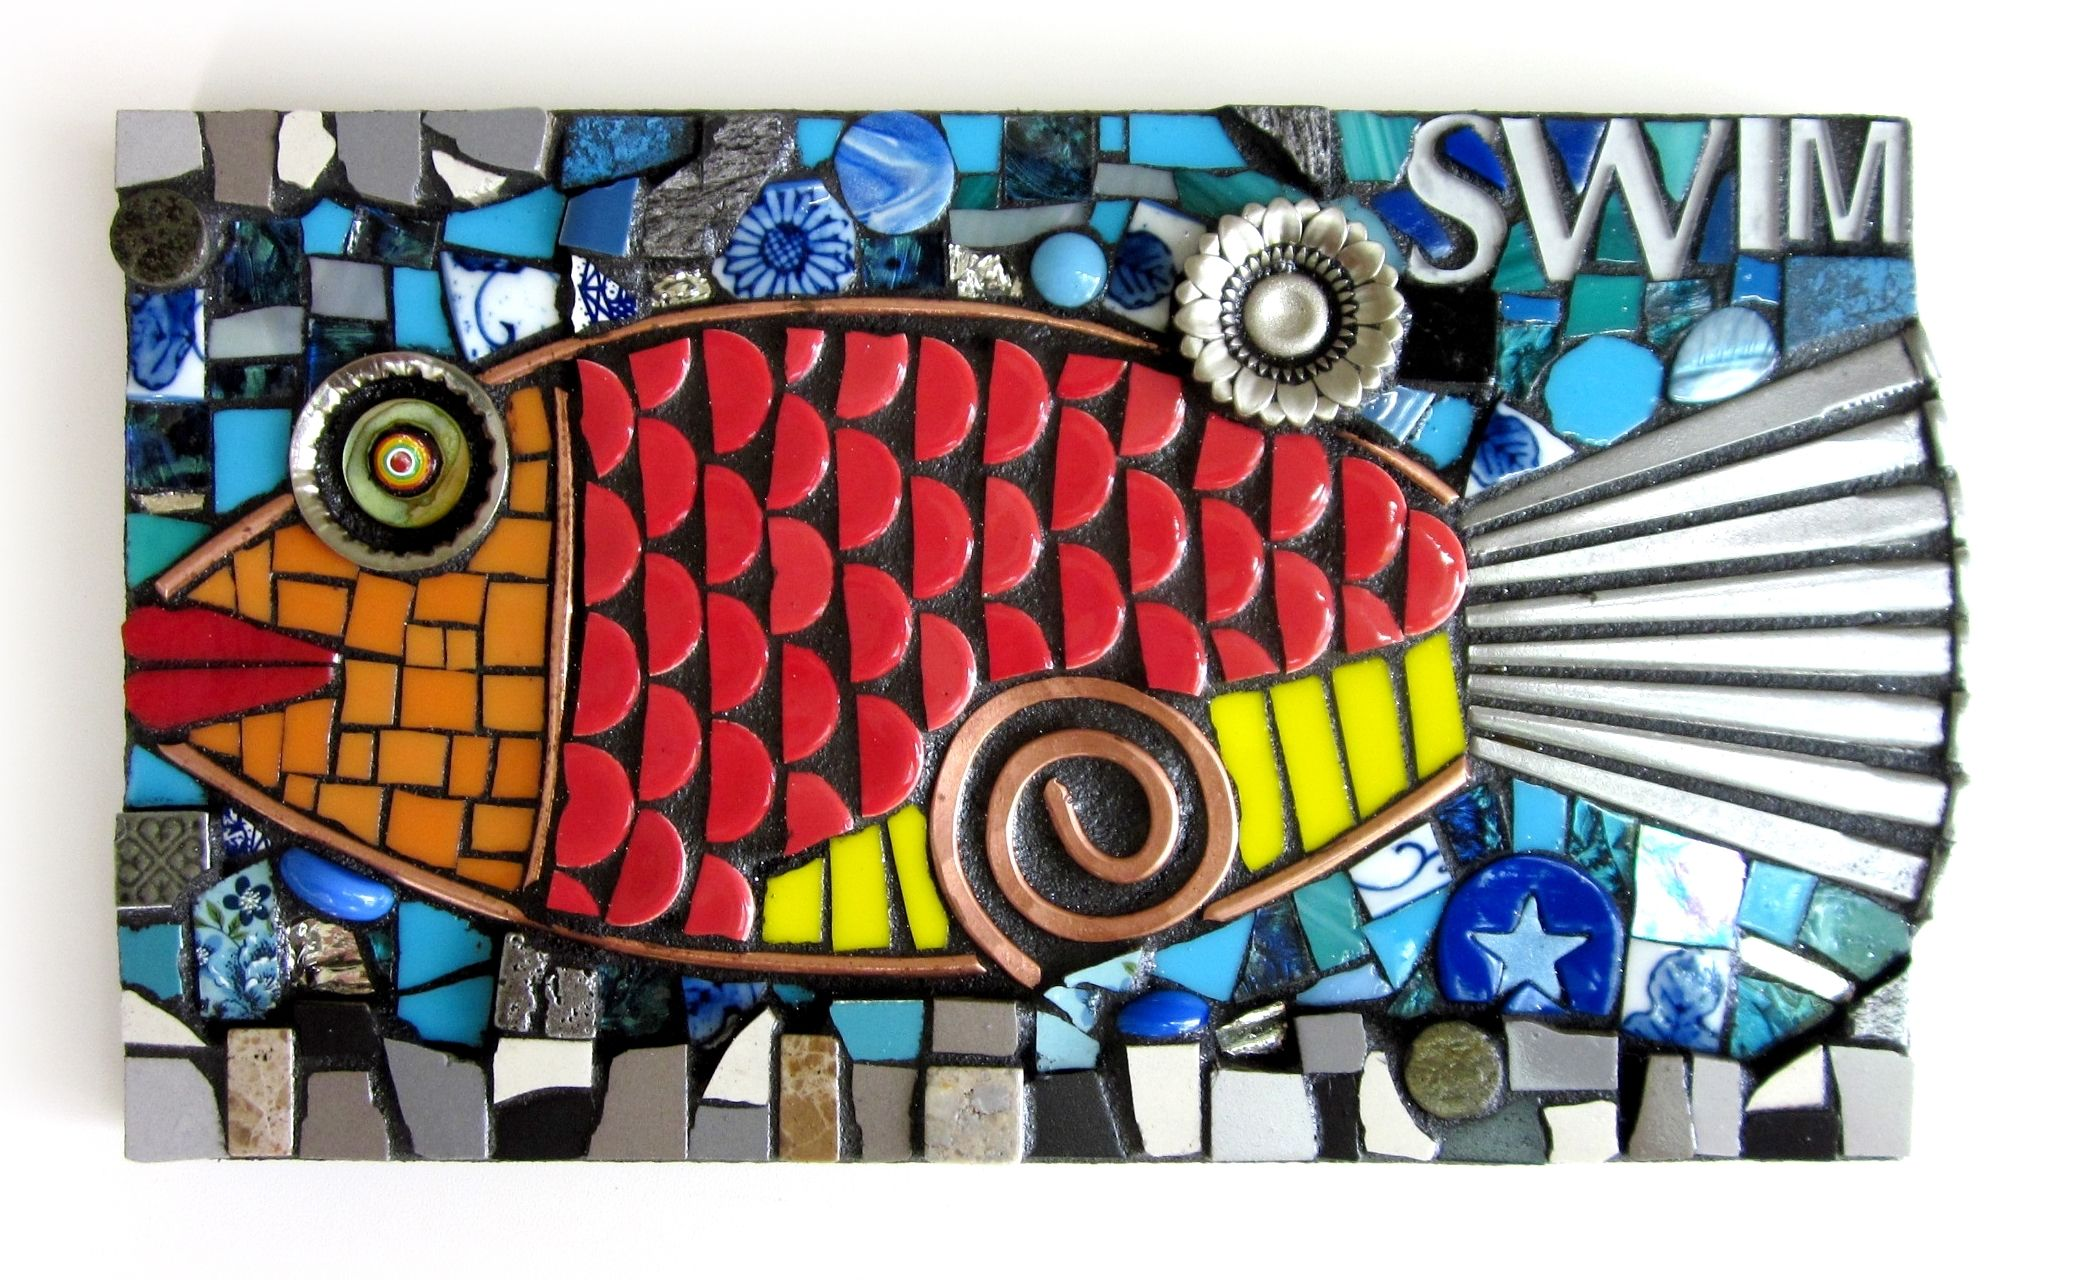 Swim. (Mosaic Fish Wall Hanging by Shawn DuBois) | Find objects ...